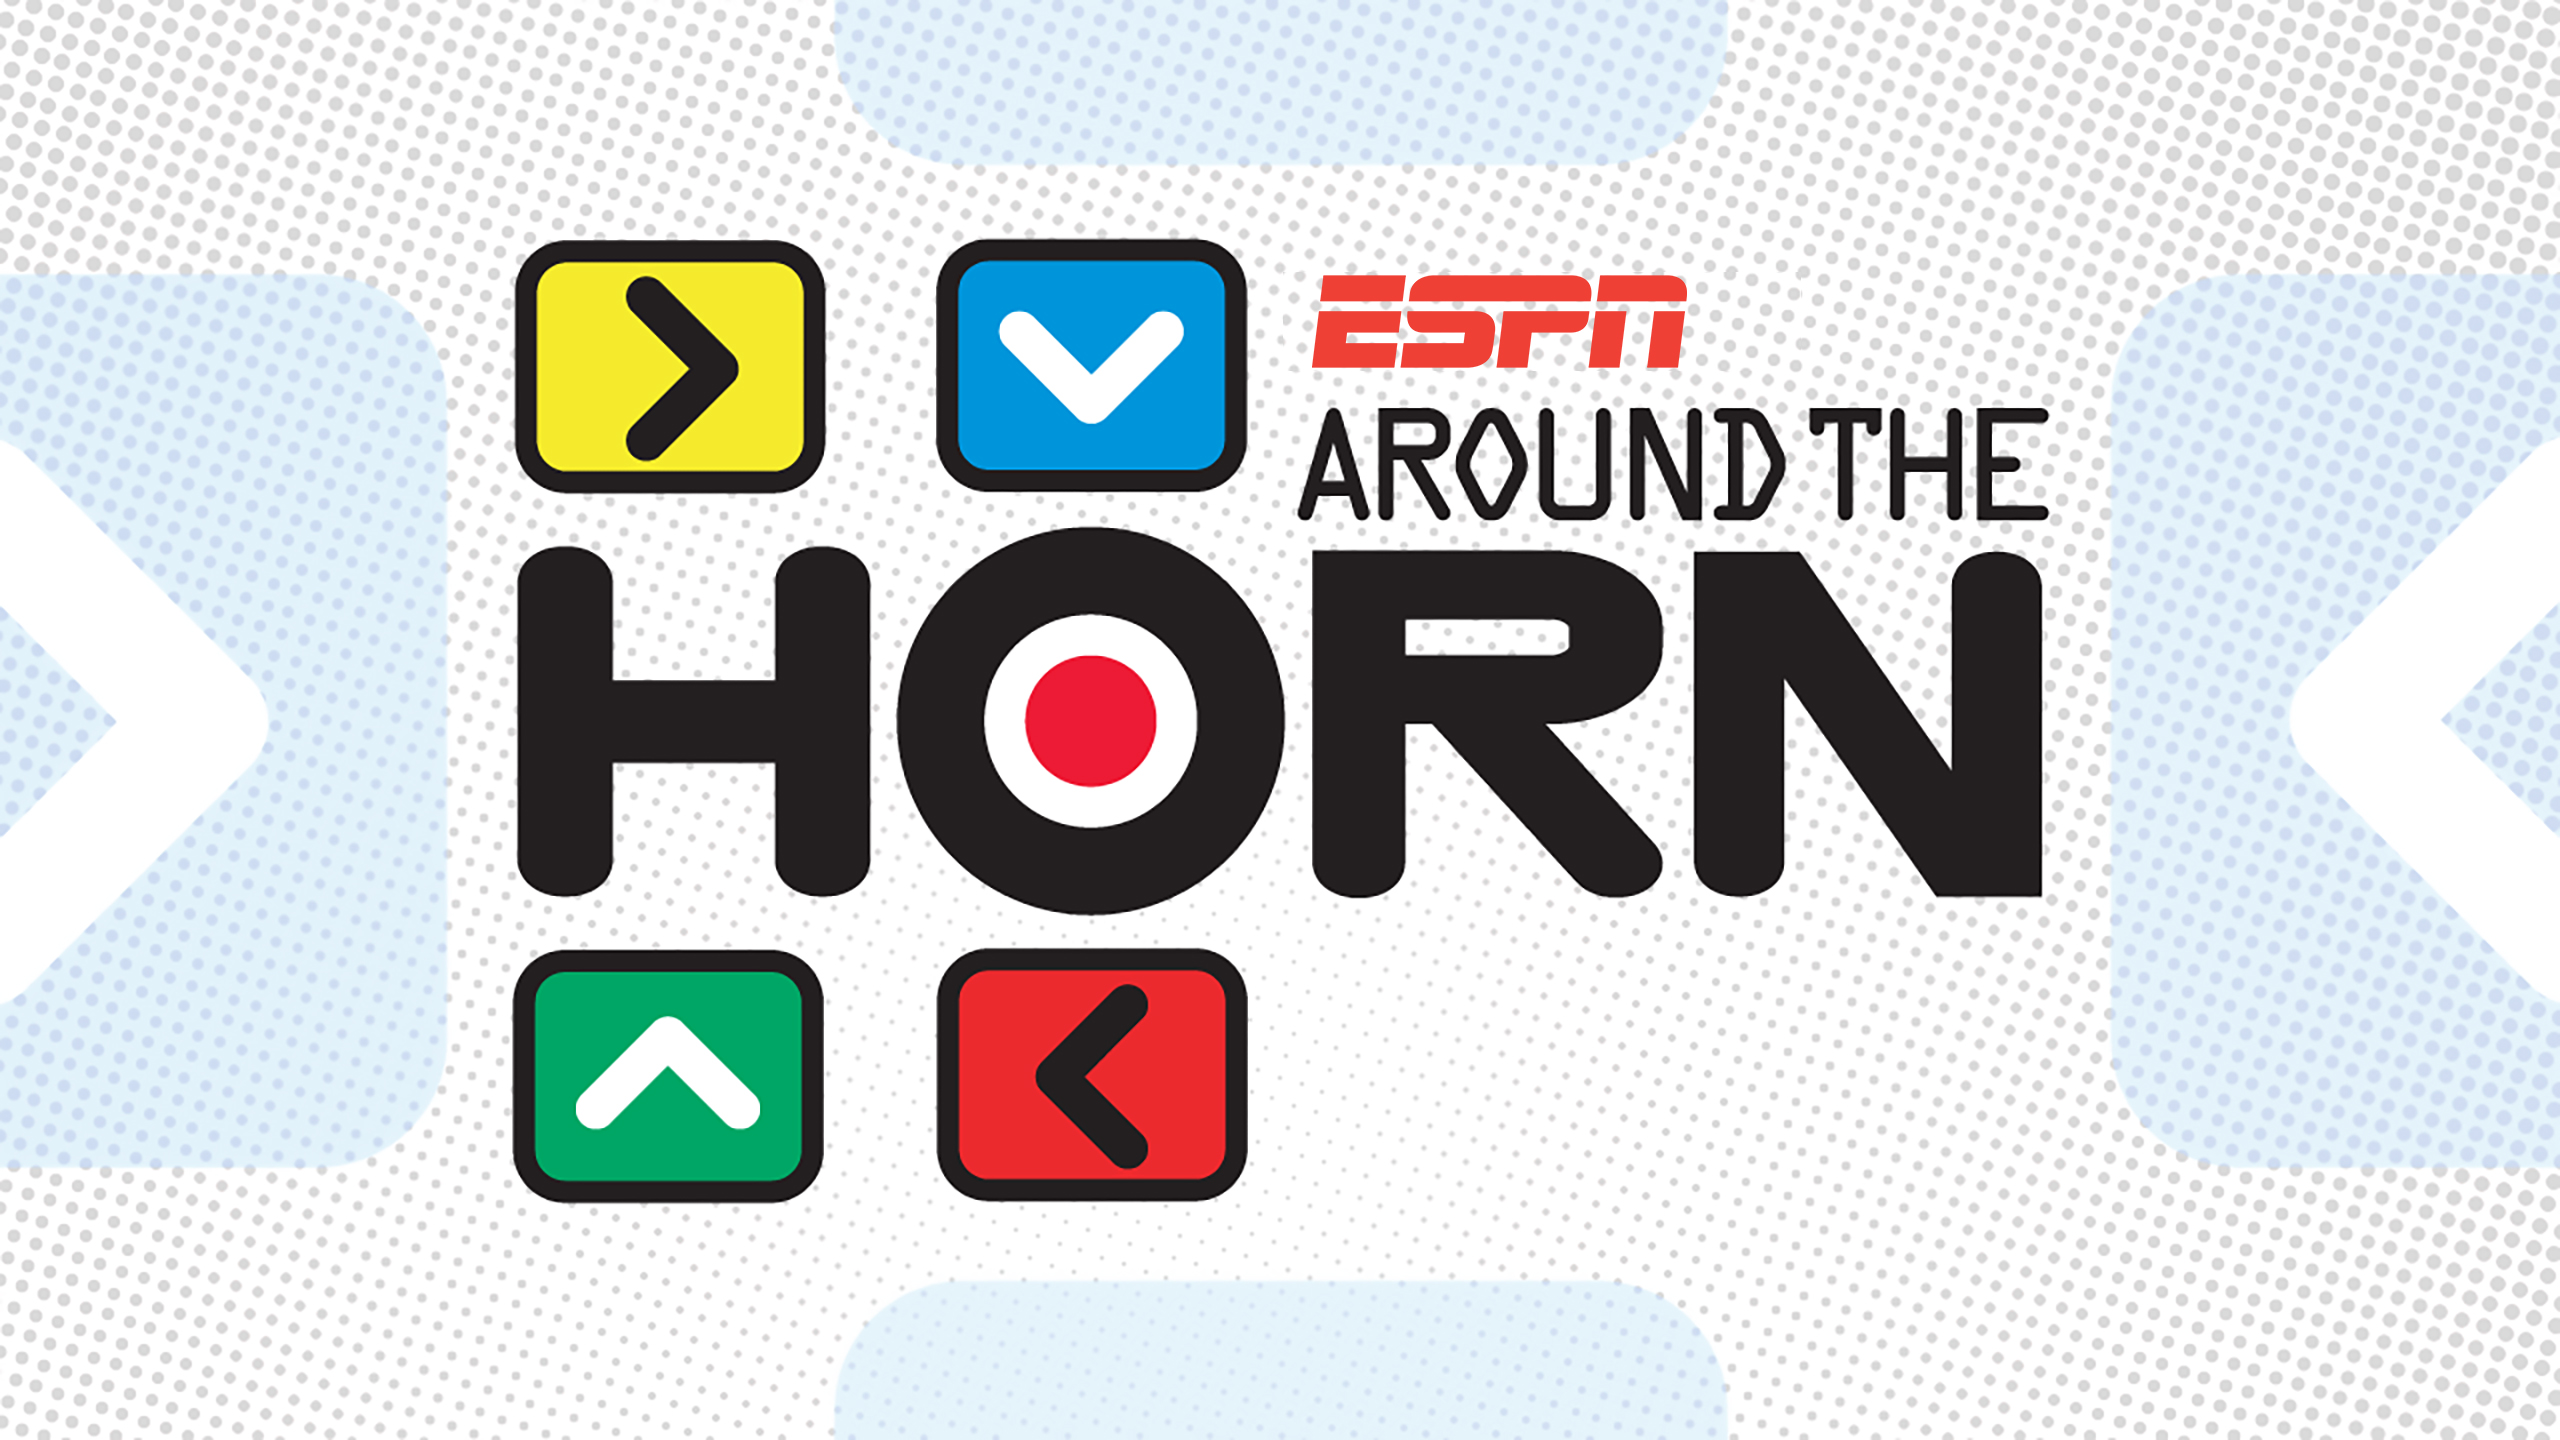 Thu, 10/18 - Around The Horn